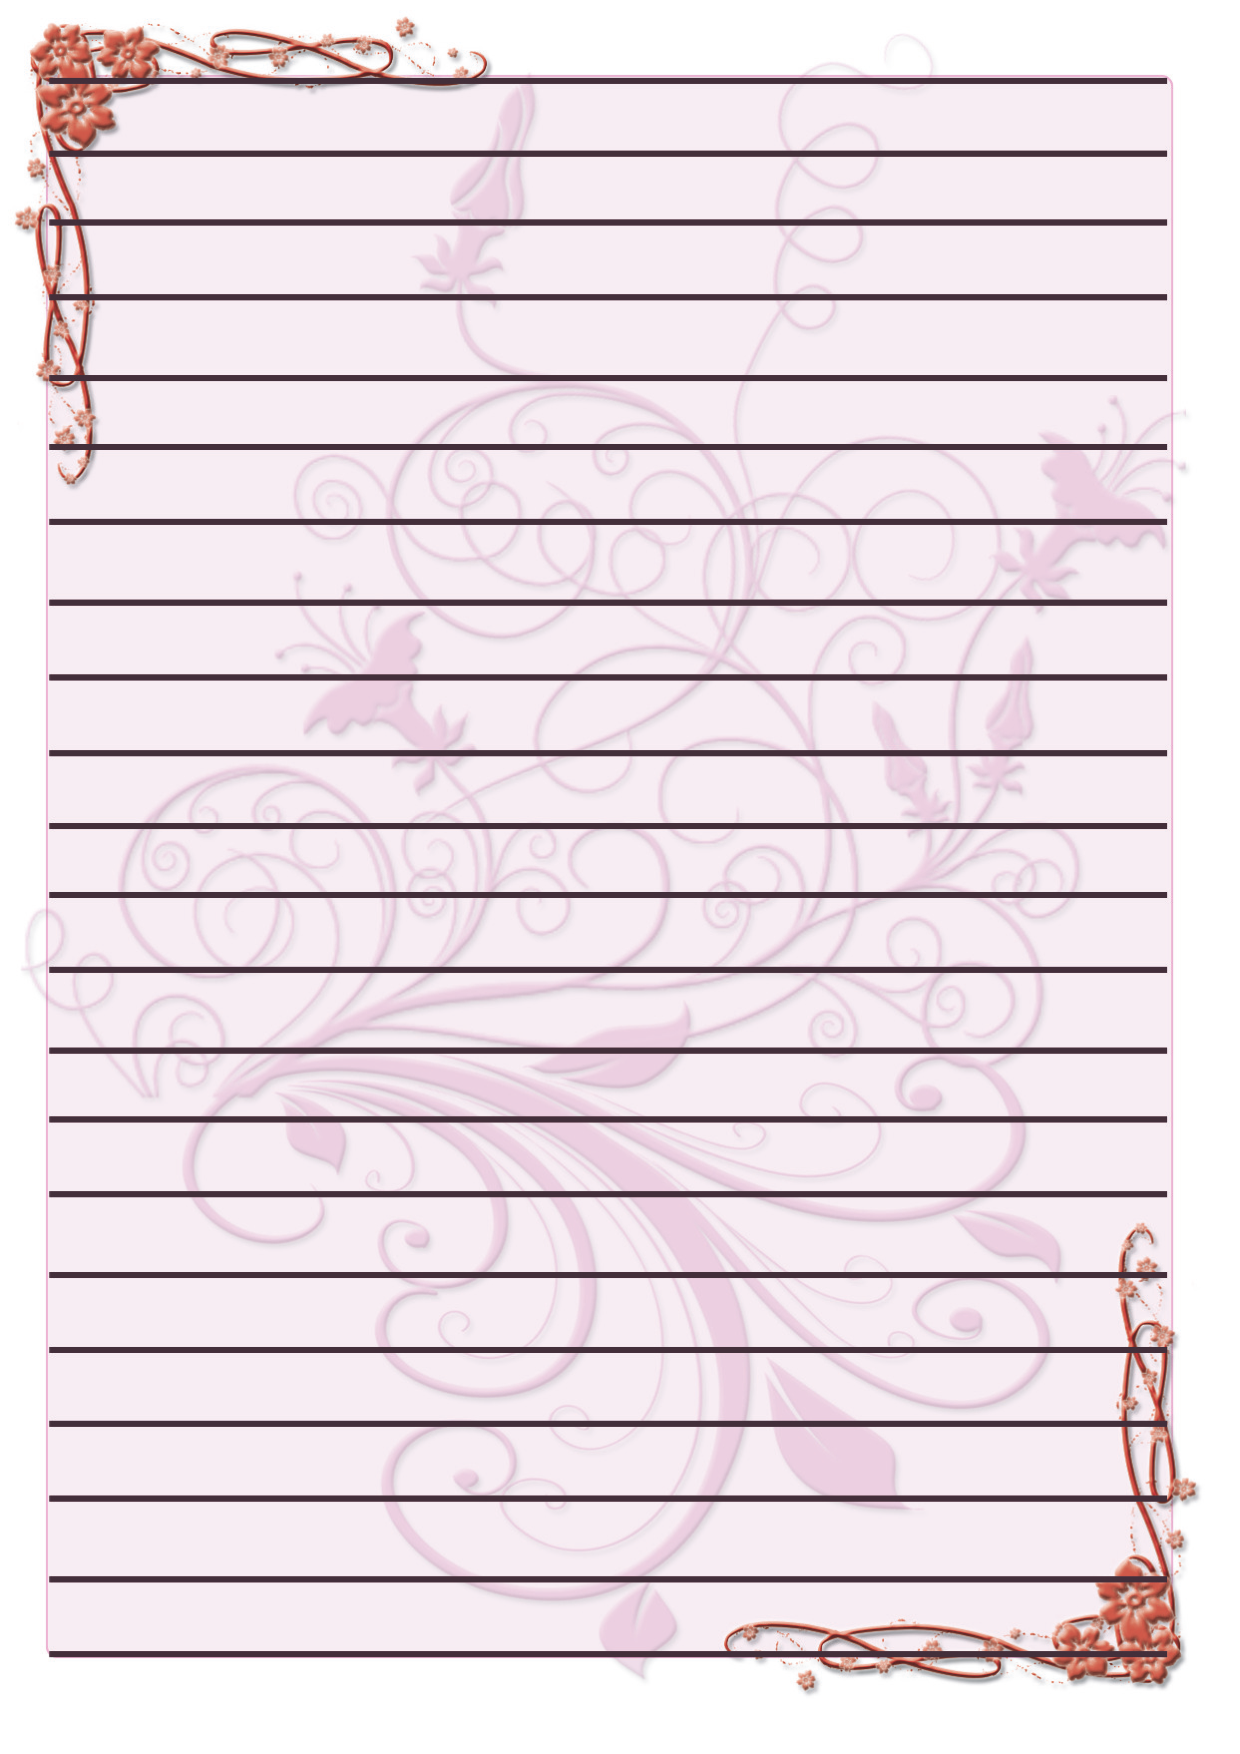 Free Printable Lined Writing Paper with Border